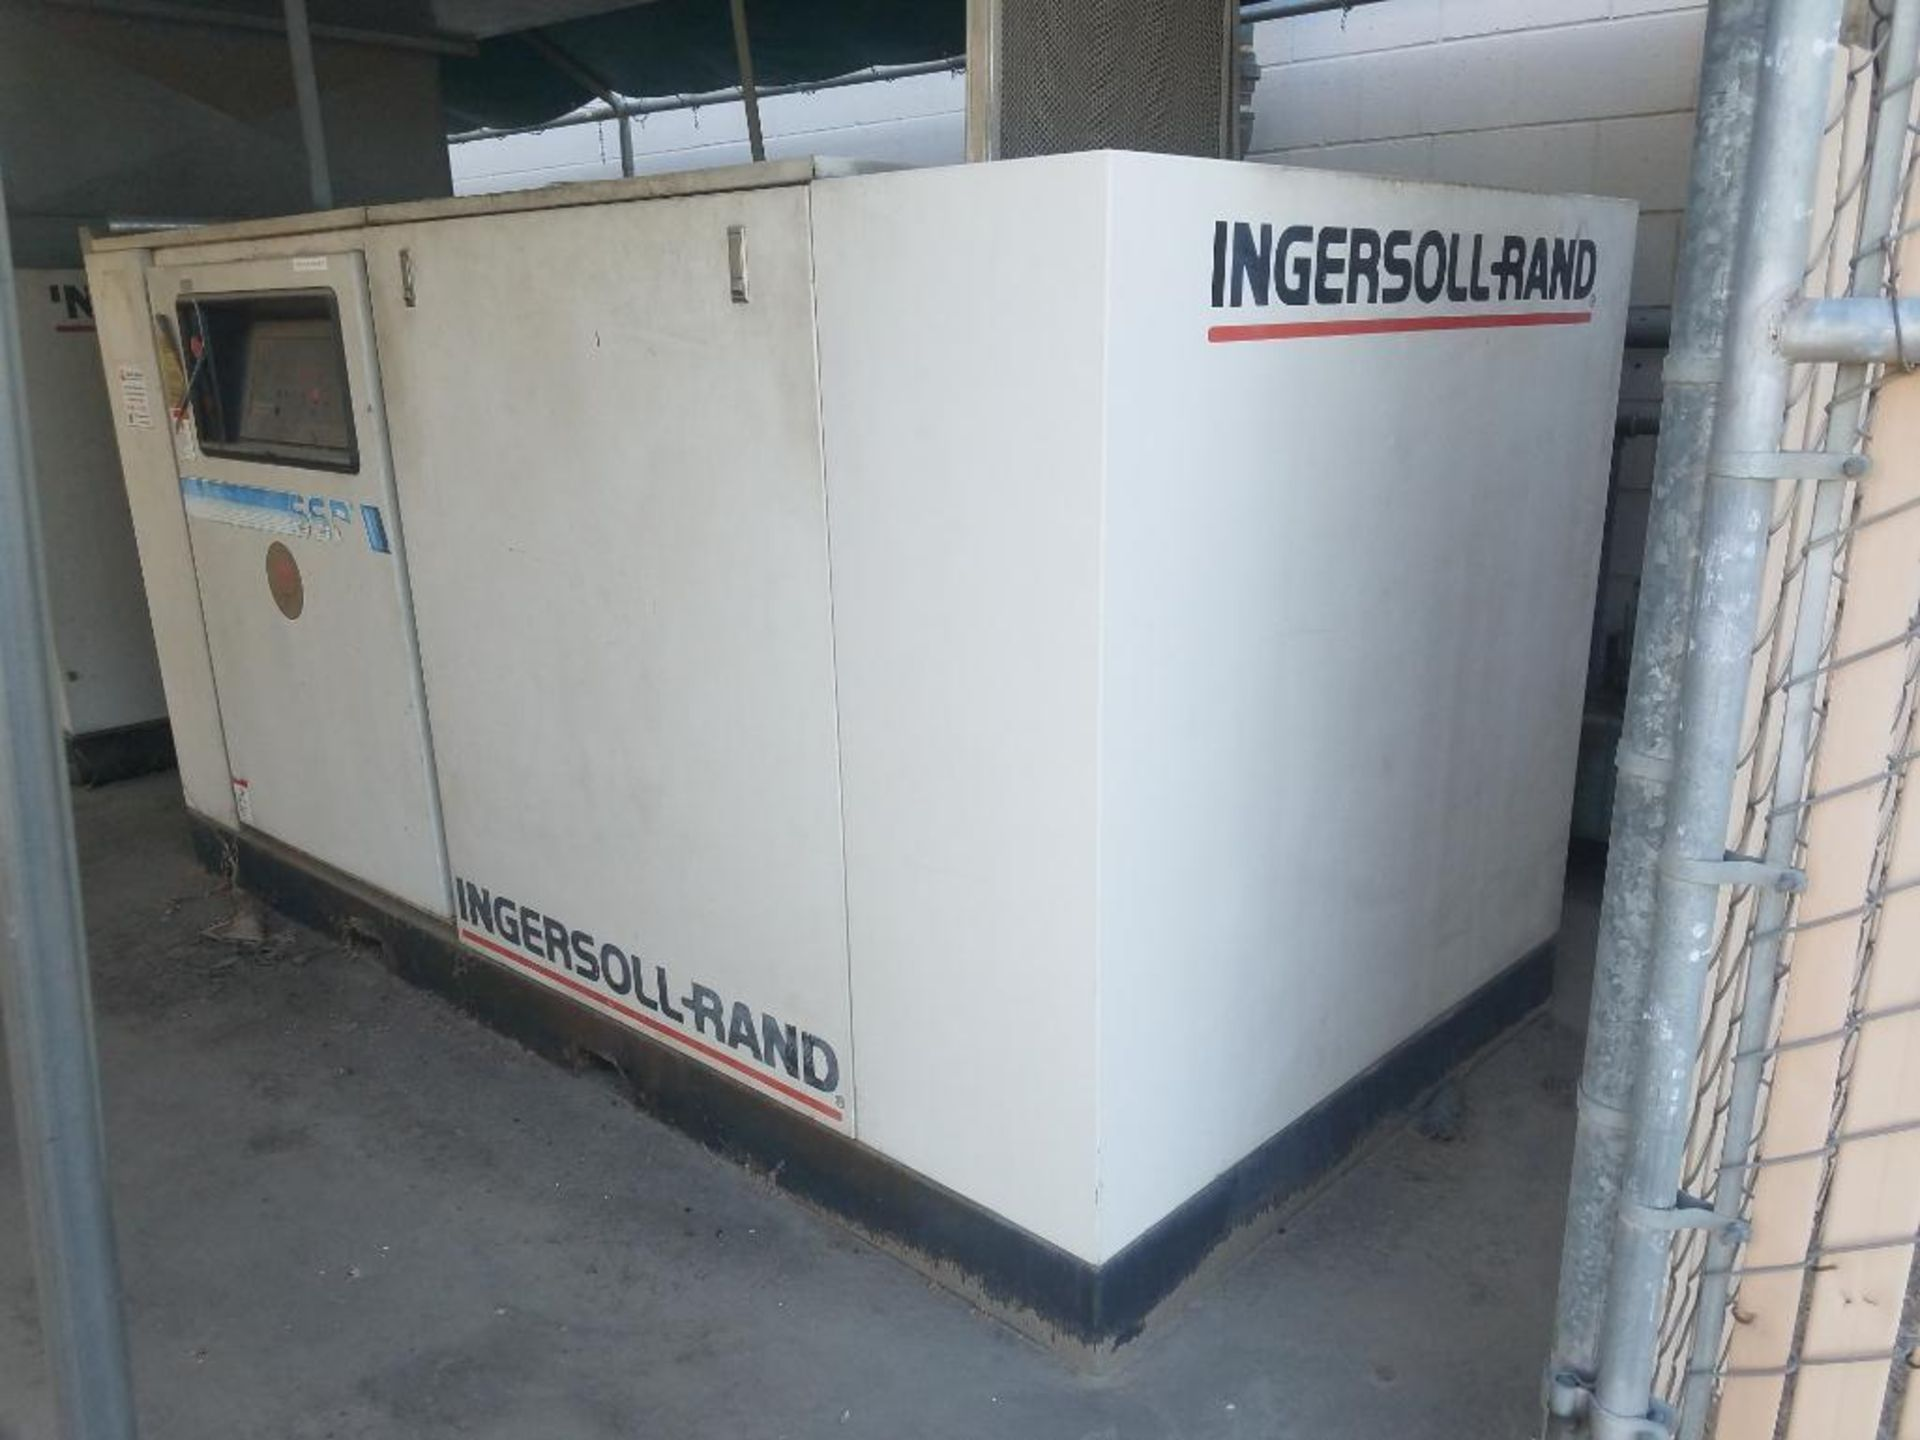 Ingersoll Rand rotary screw air compressor, 100 hp - Image 4 of 6